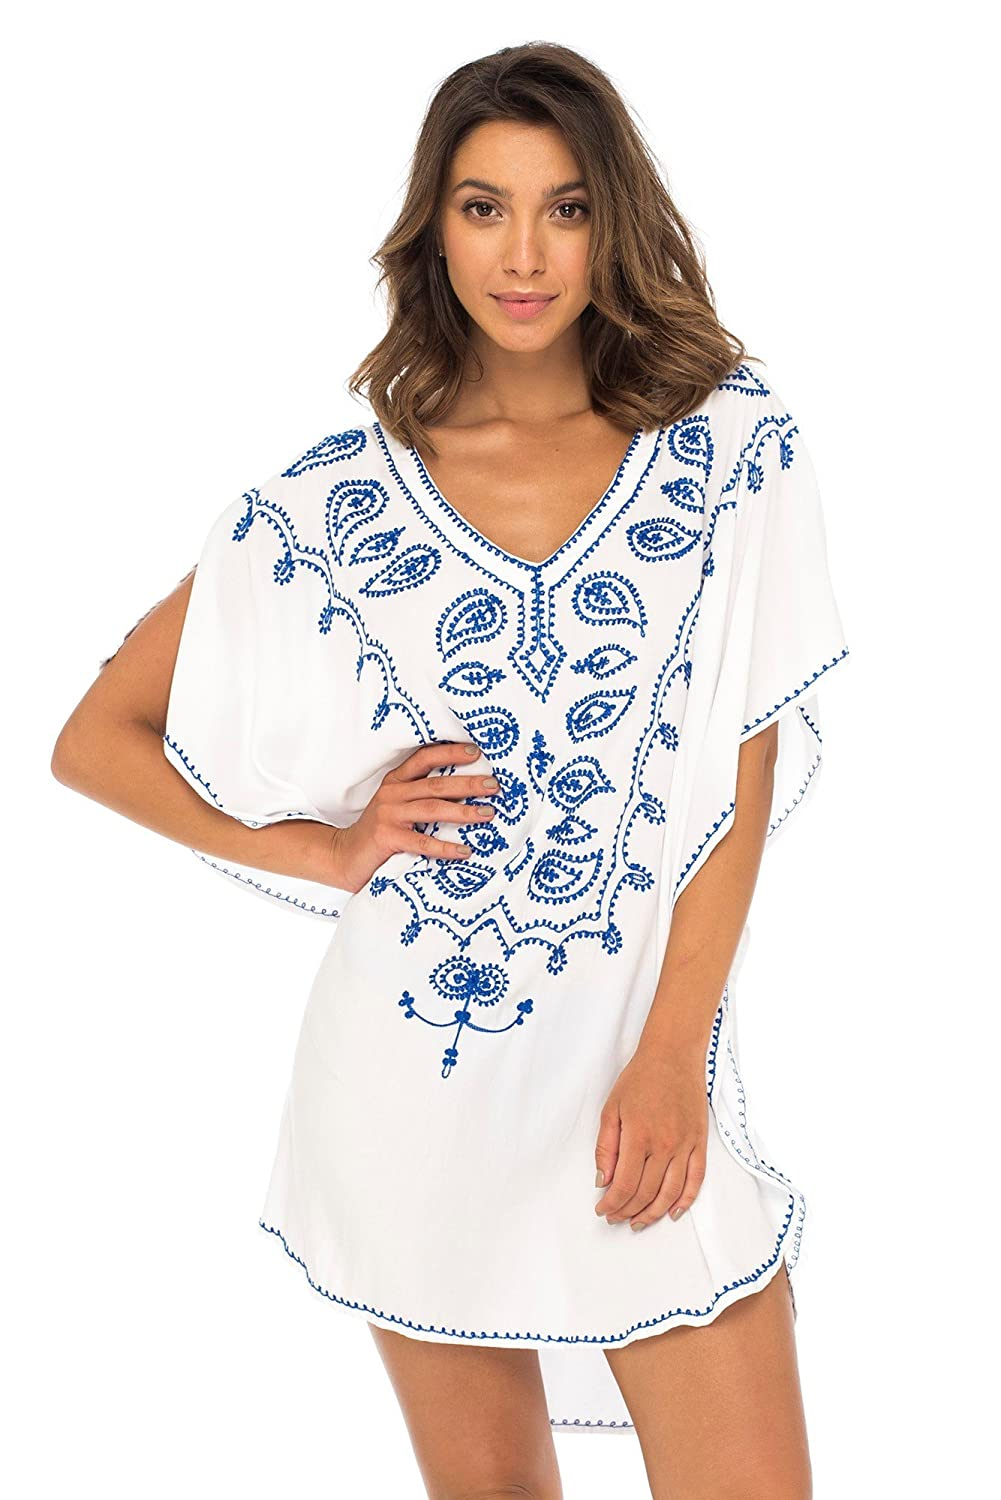 23f75d1876c94 Back From Bali Womens Swimsuit Cover up Bathing Suit Bikini Swimwear Cover  Embroidered Boho Beach Tunic White at Amazon Women's Clothing store: